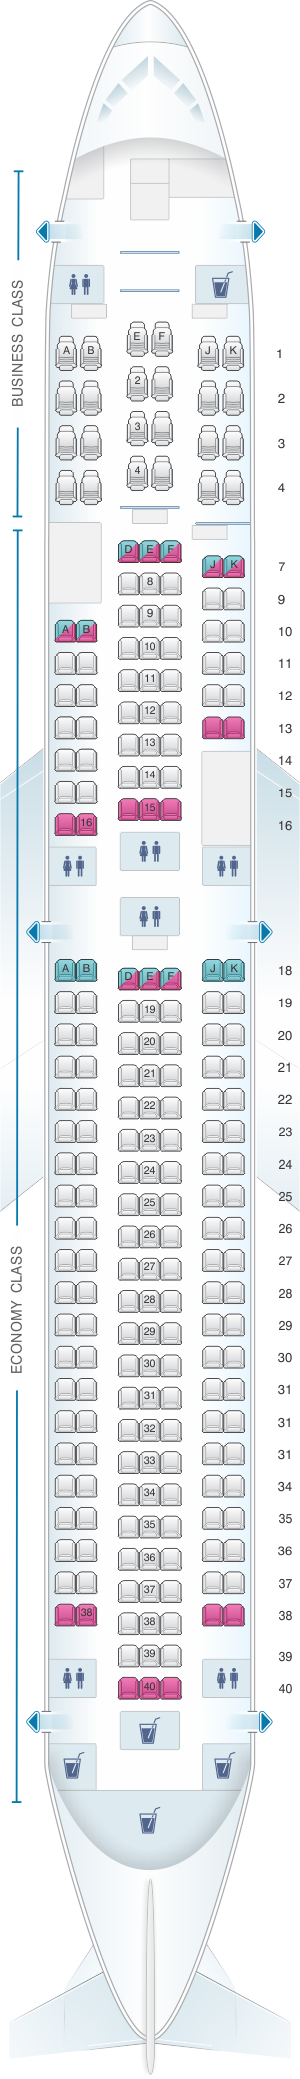 Seat map for Air New Zealand Boeing B767 300ER